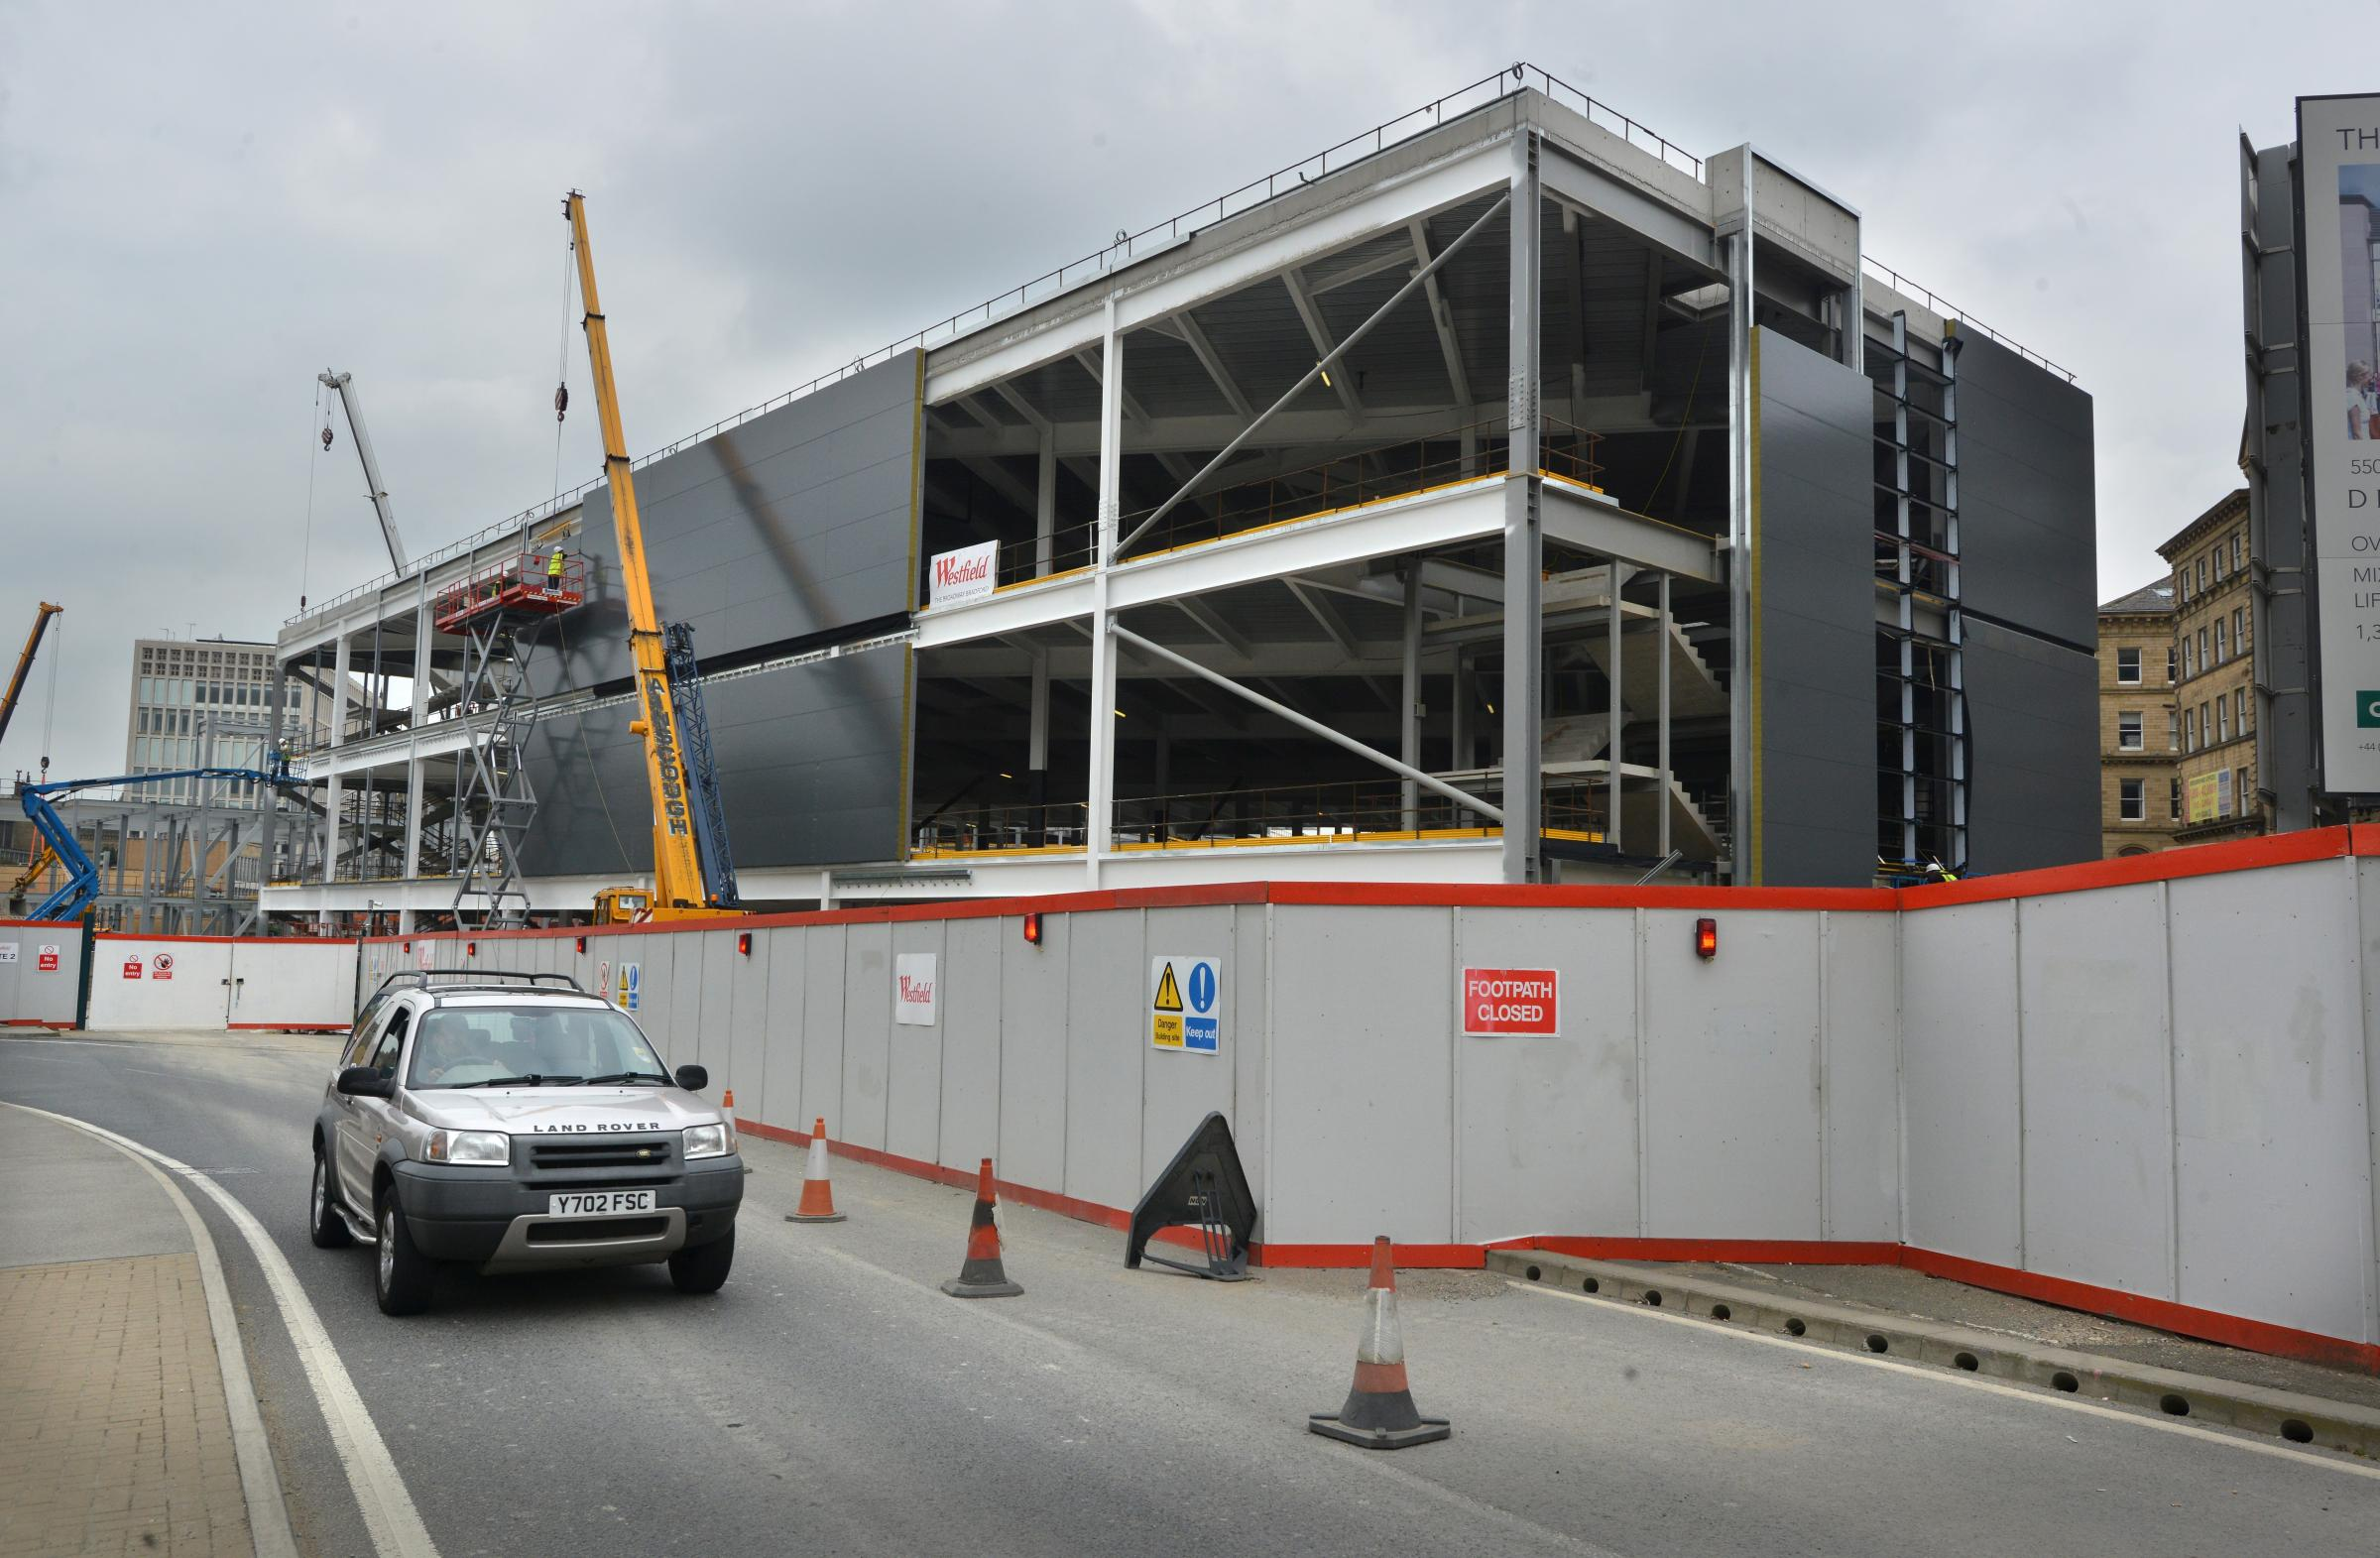 FORGING AHEAD: Work has started to install the cladding at the Westfield Broadway shopping centre